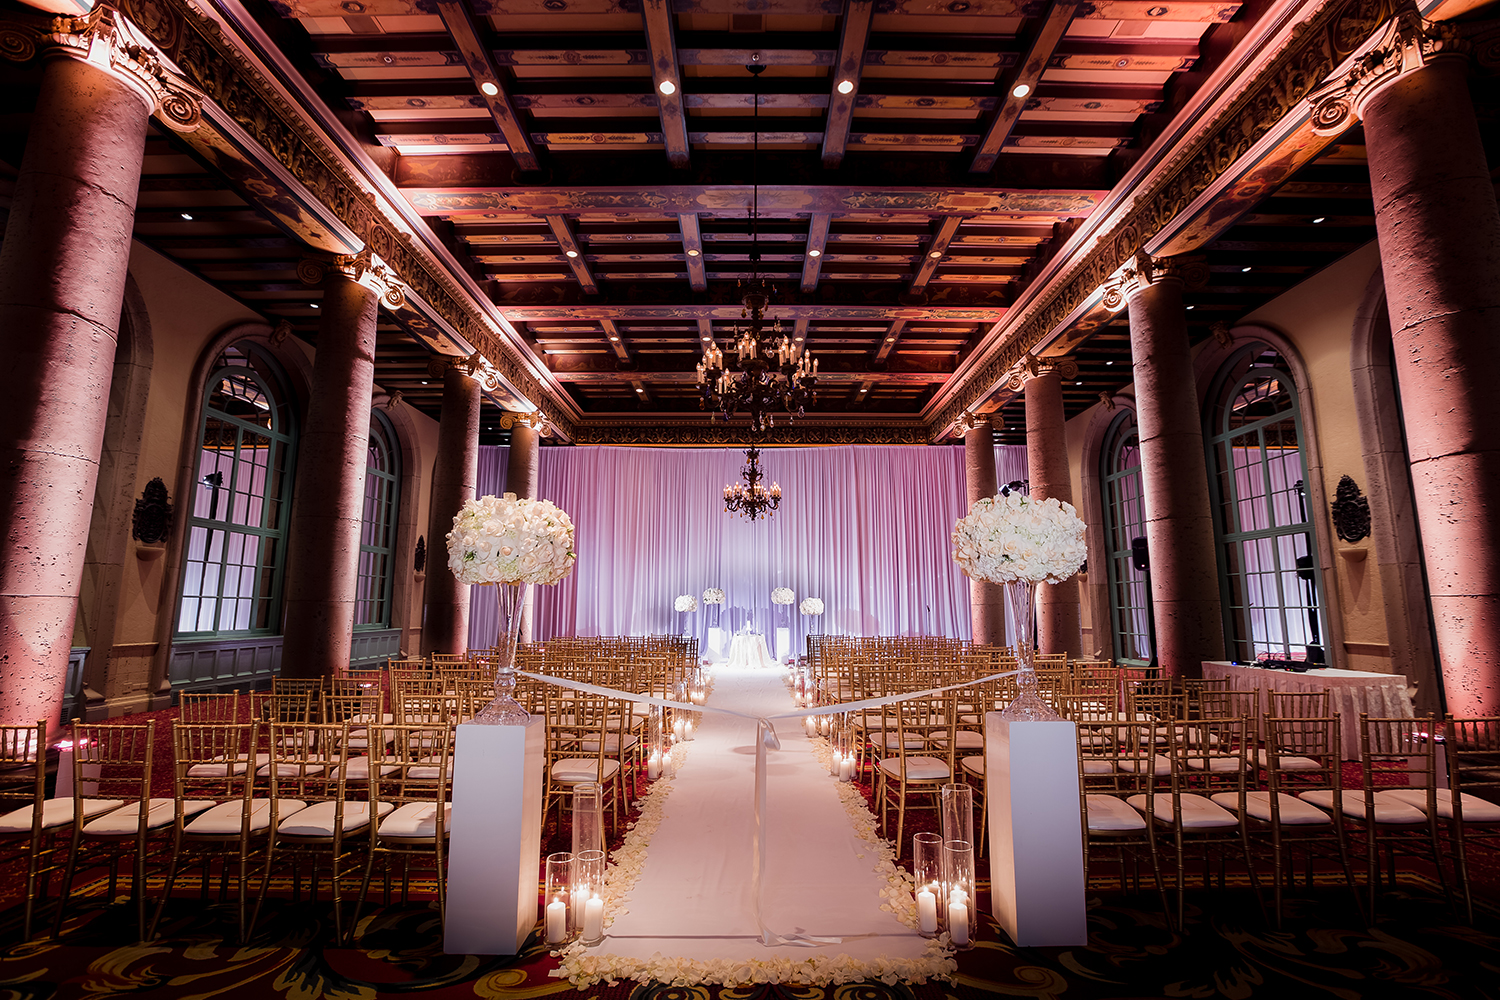 biltmore-hotel-wedding-la.jpg